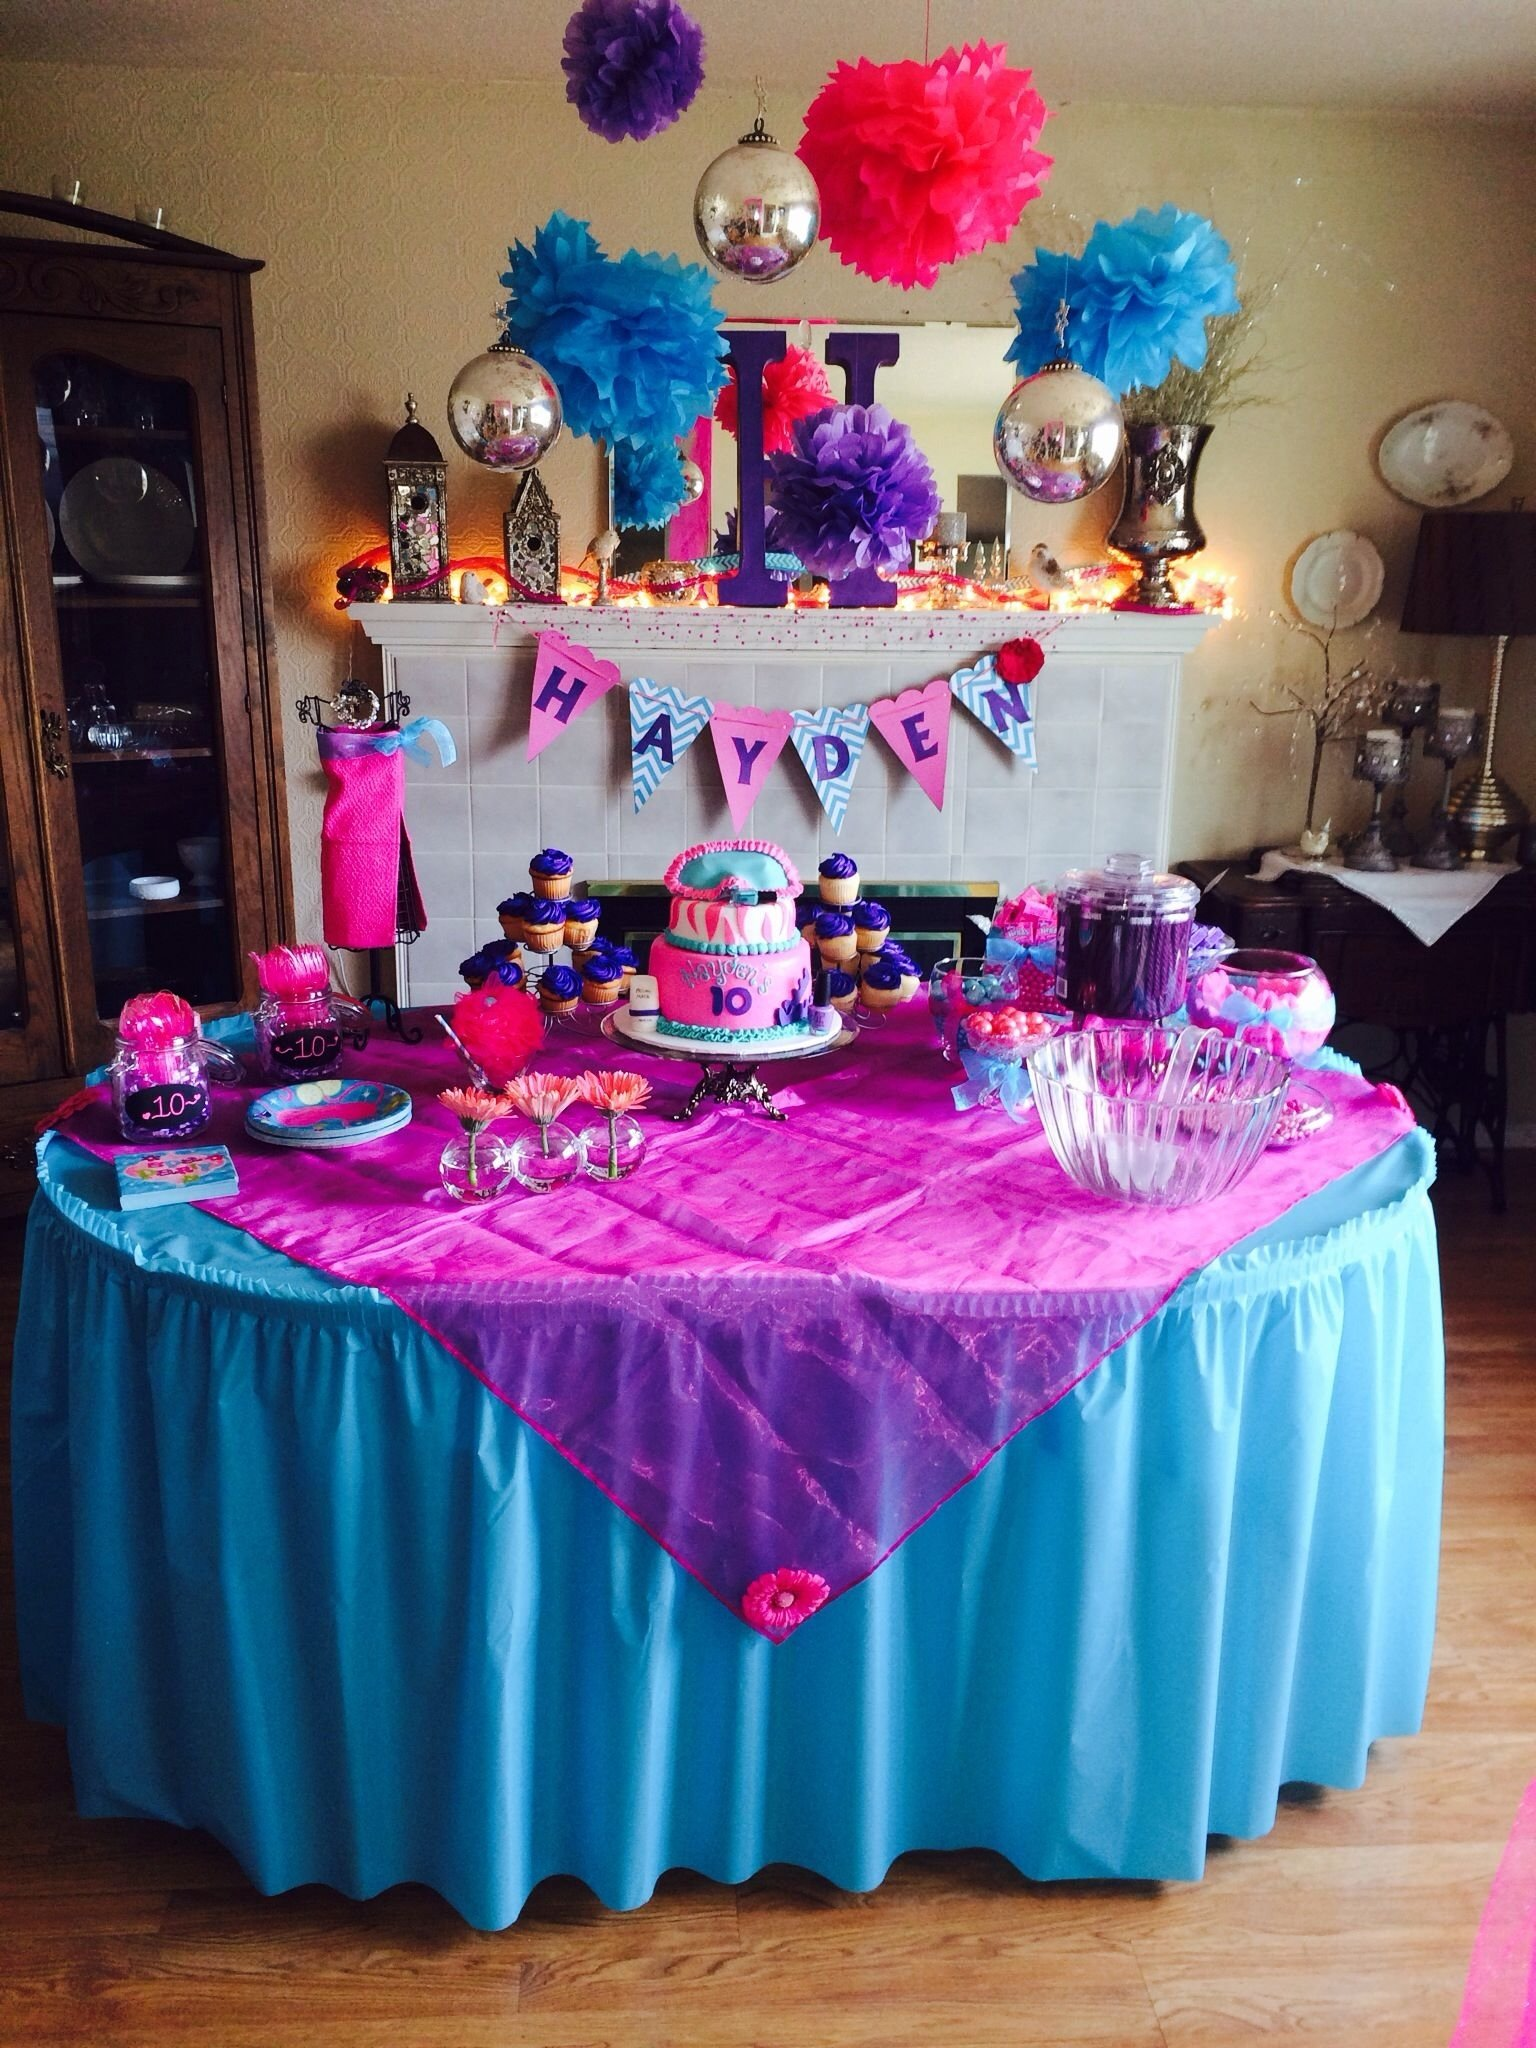 pictures: birthday party ideas for girls age 10, - homemade party decor